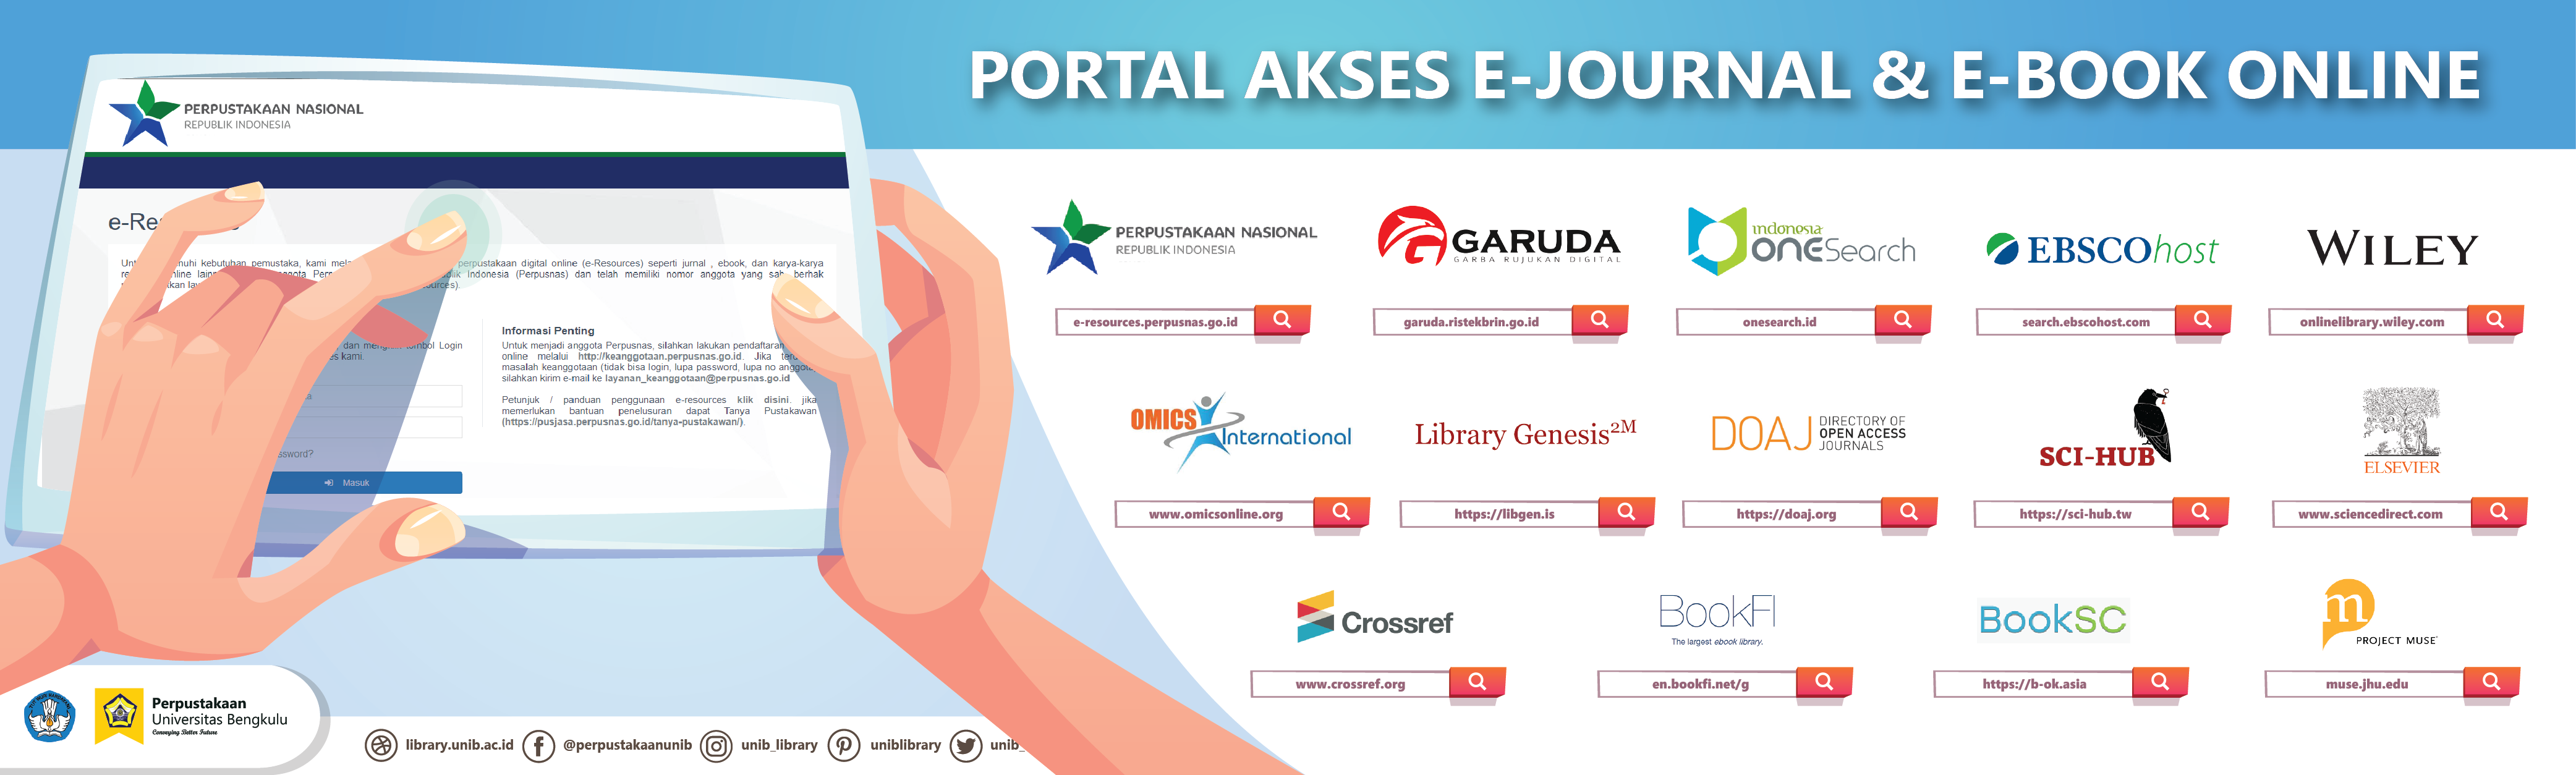 PORTAL AKSES E-JOURNAL & E-BOOK ONLINE